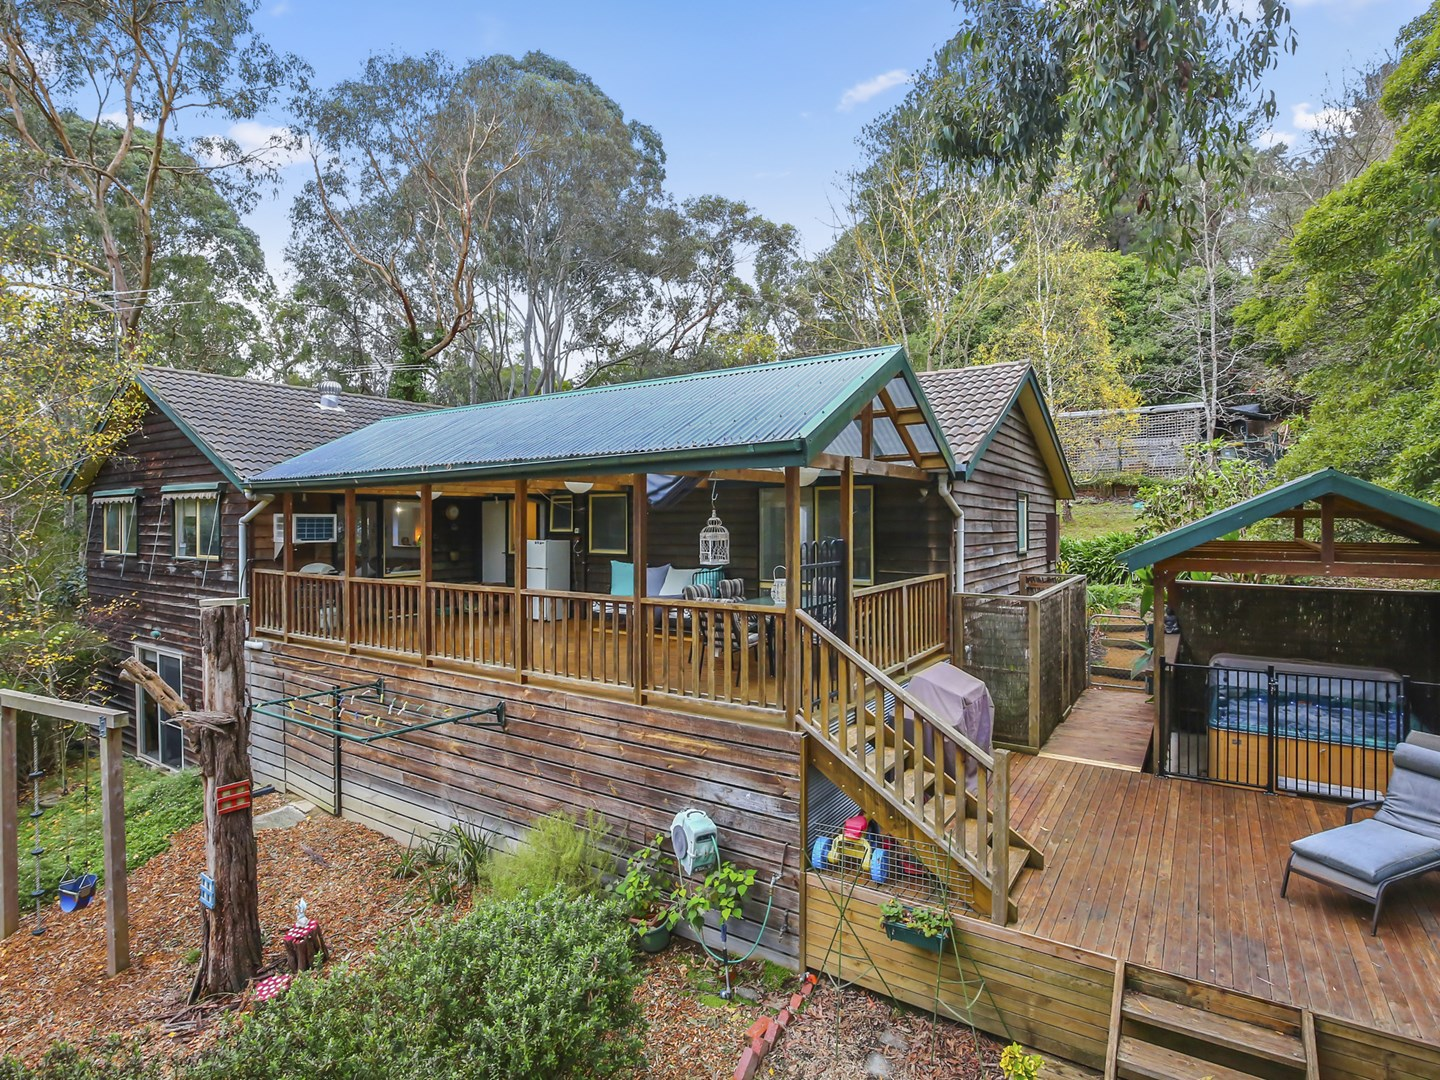 Property Report for 30 Warrawee Road, Mount Evelyn VIC 3796